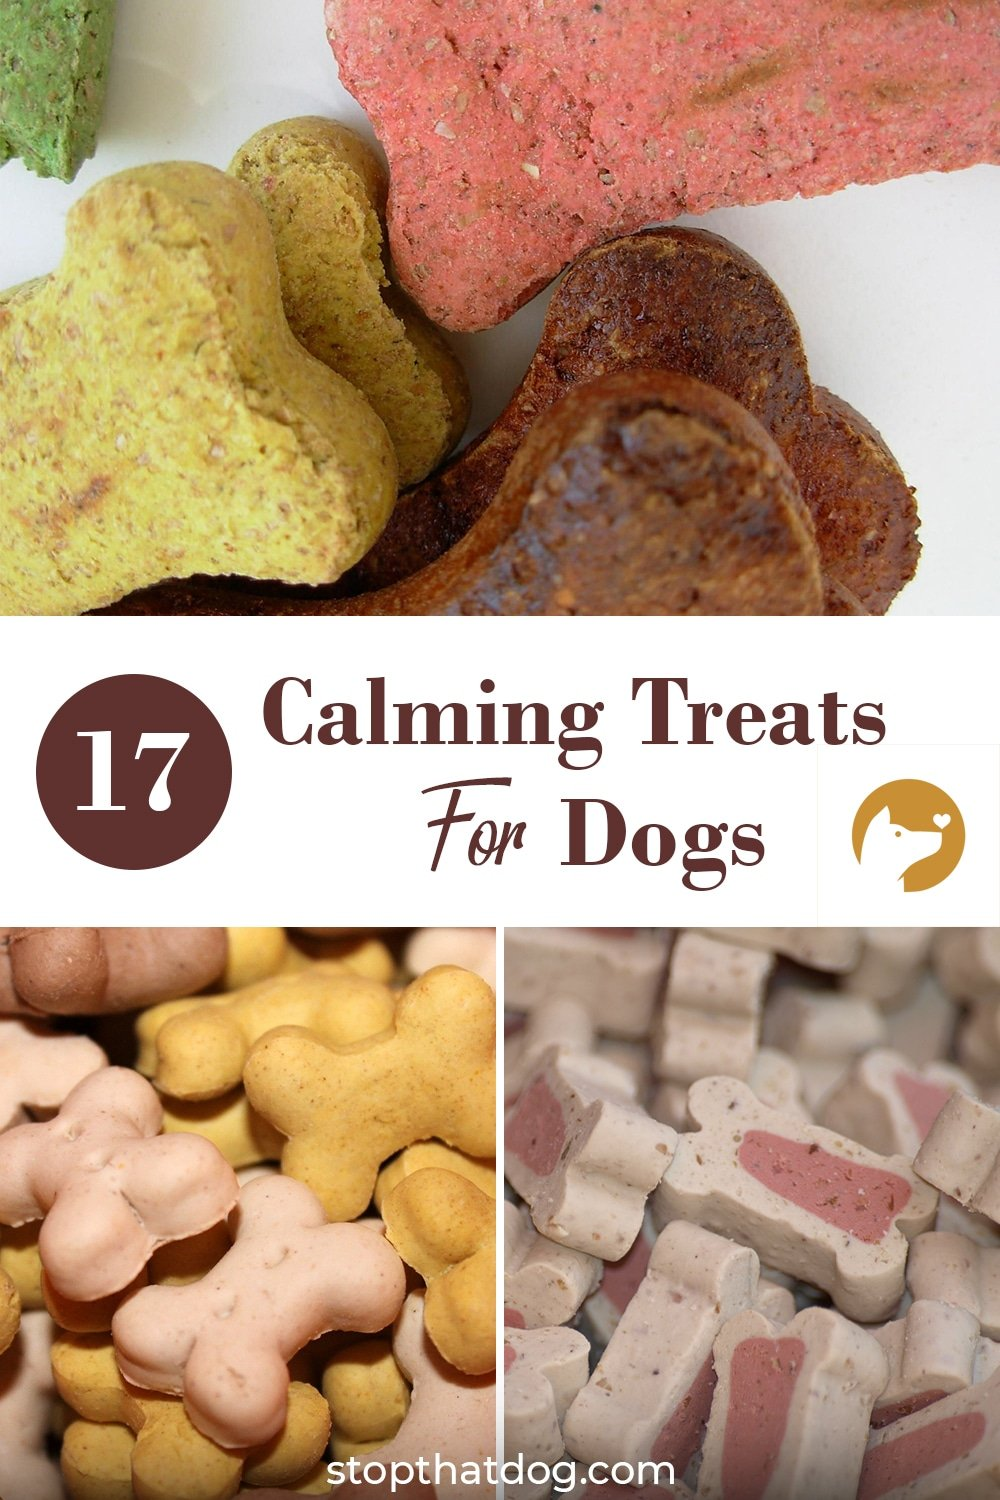 What Are The Best Calming Treats For Dogs?